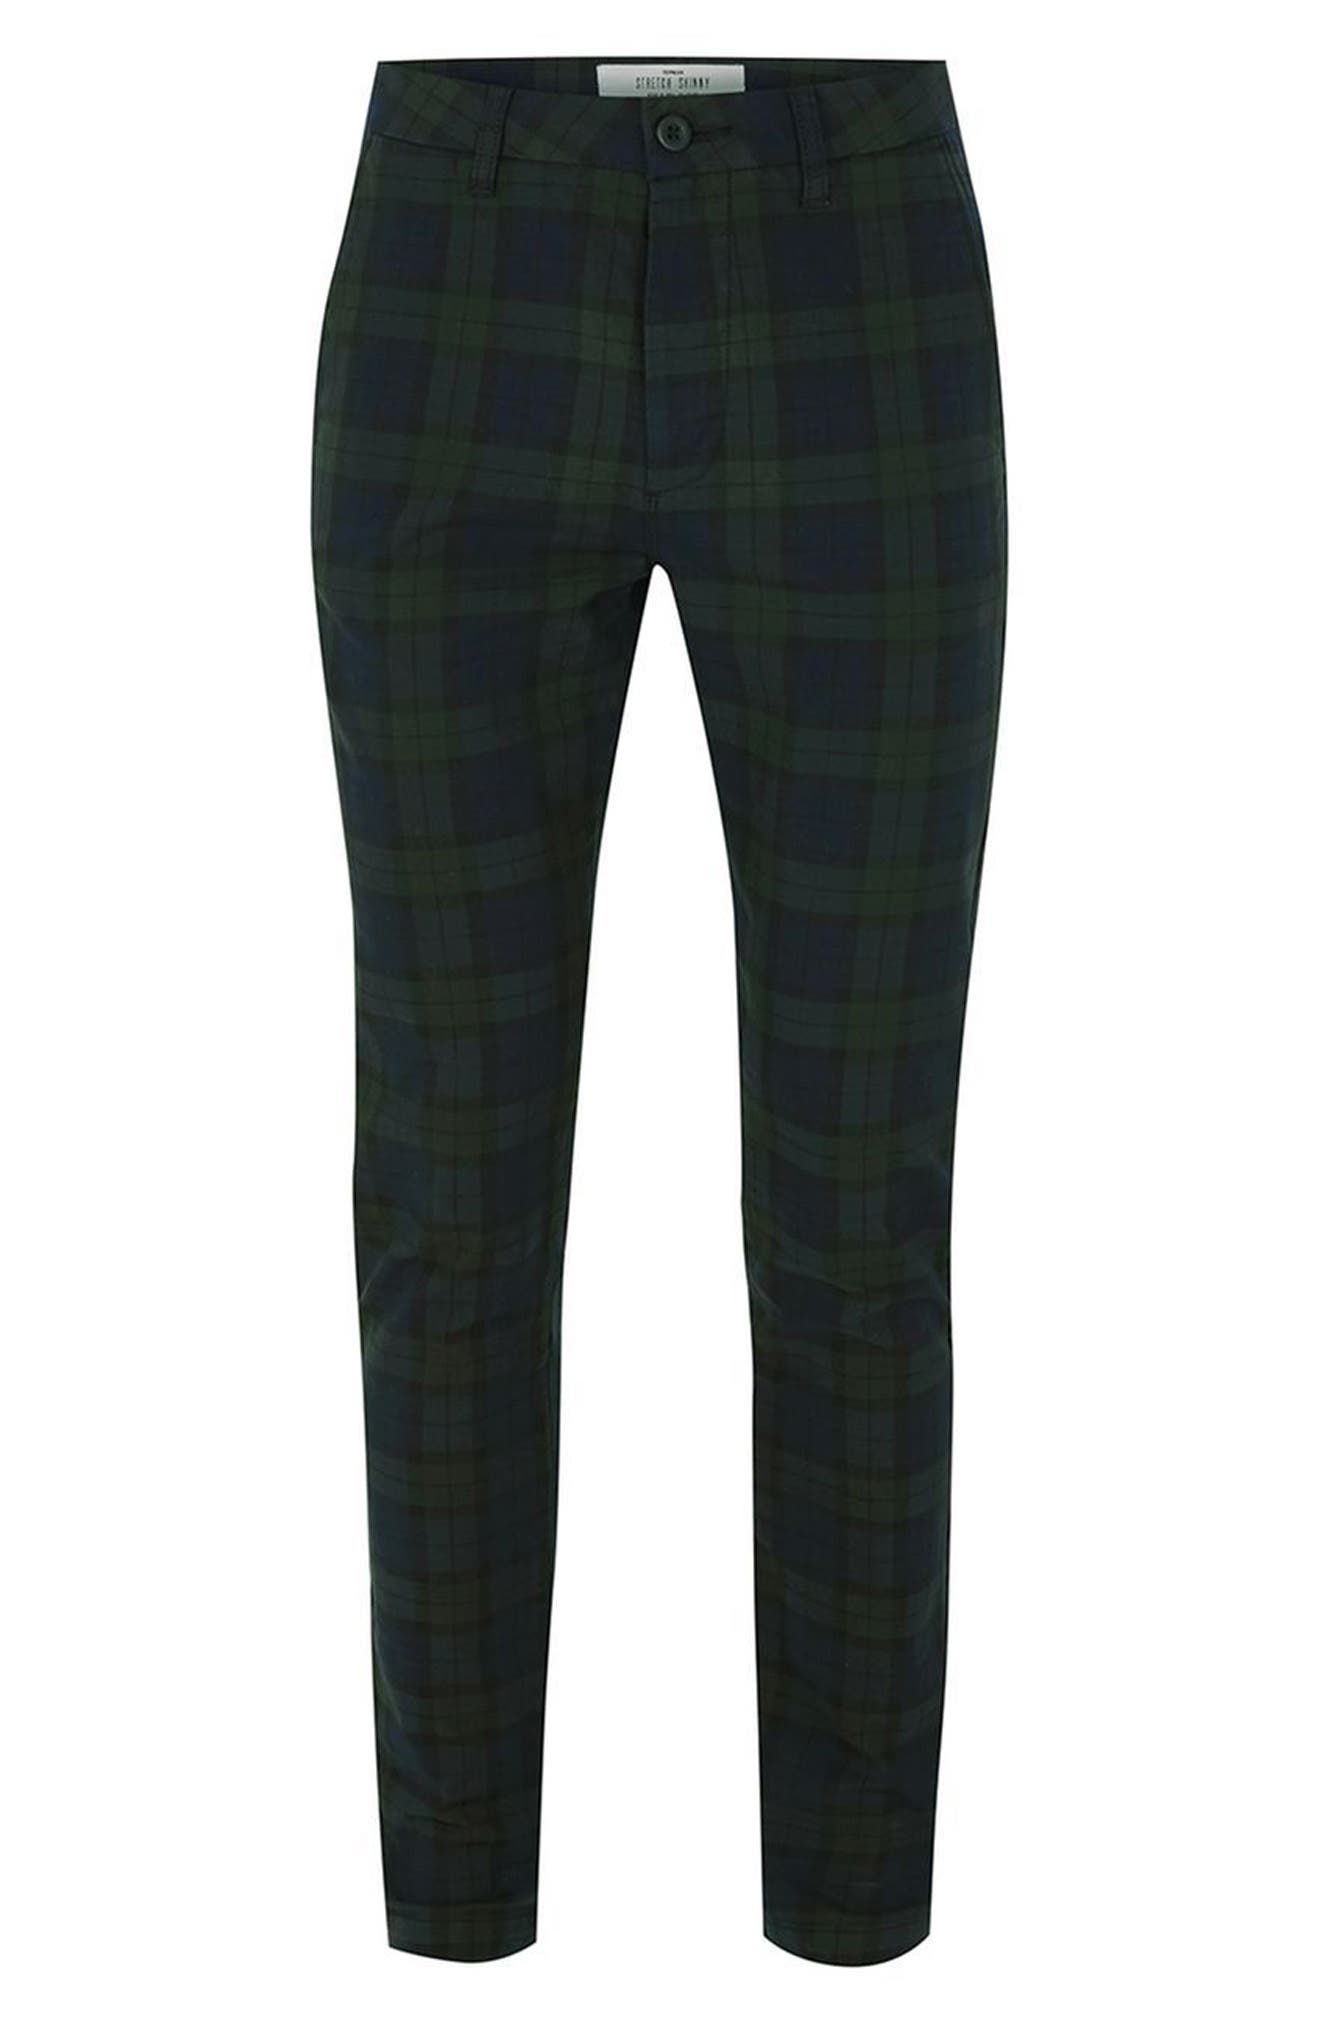 Black Watch Check Stretch Skinny Fit Trousers,                             Alternate thumbnail 4, color,                             340